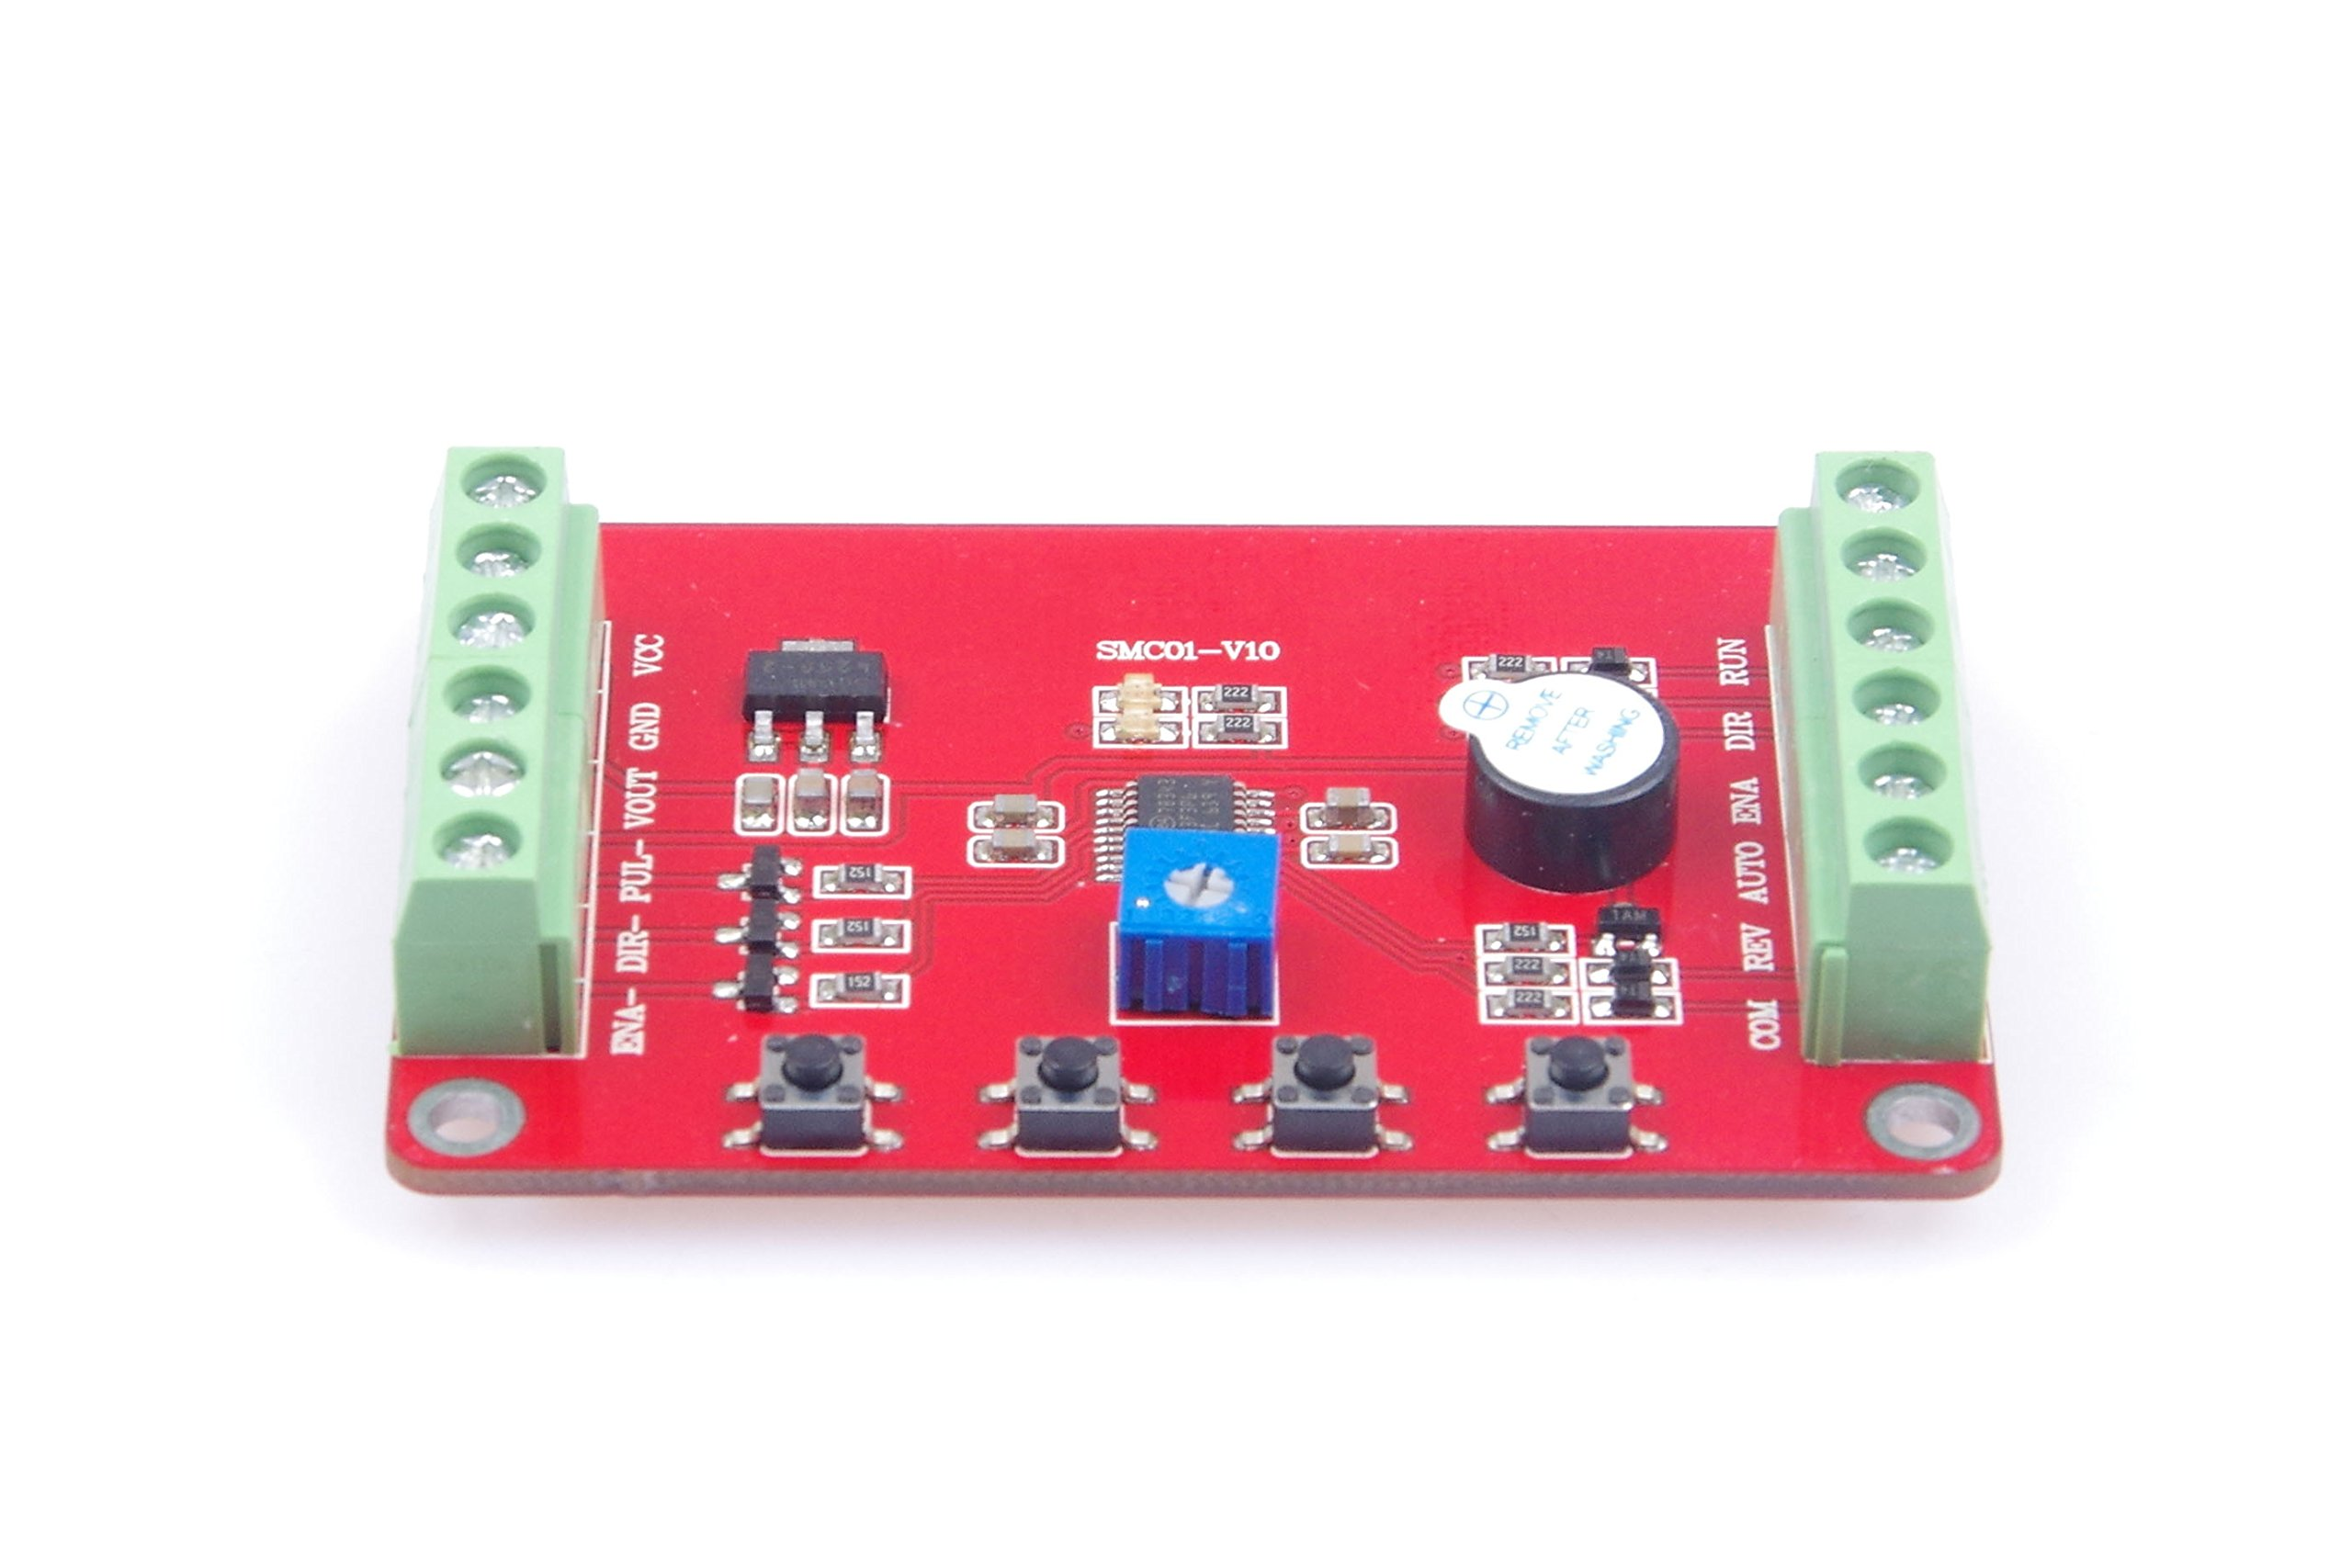 LM YN Stepper Motor Controller 0.3K-30K PWM Pulse Output Adjustable DC5-32V Power Supply by LM YN (Image #7)